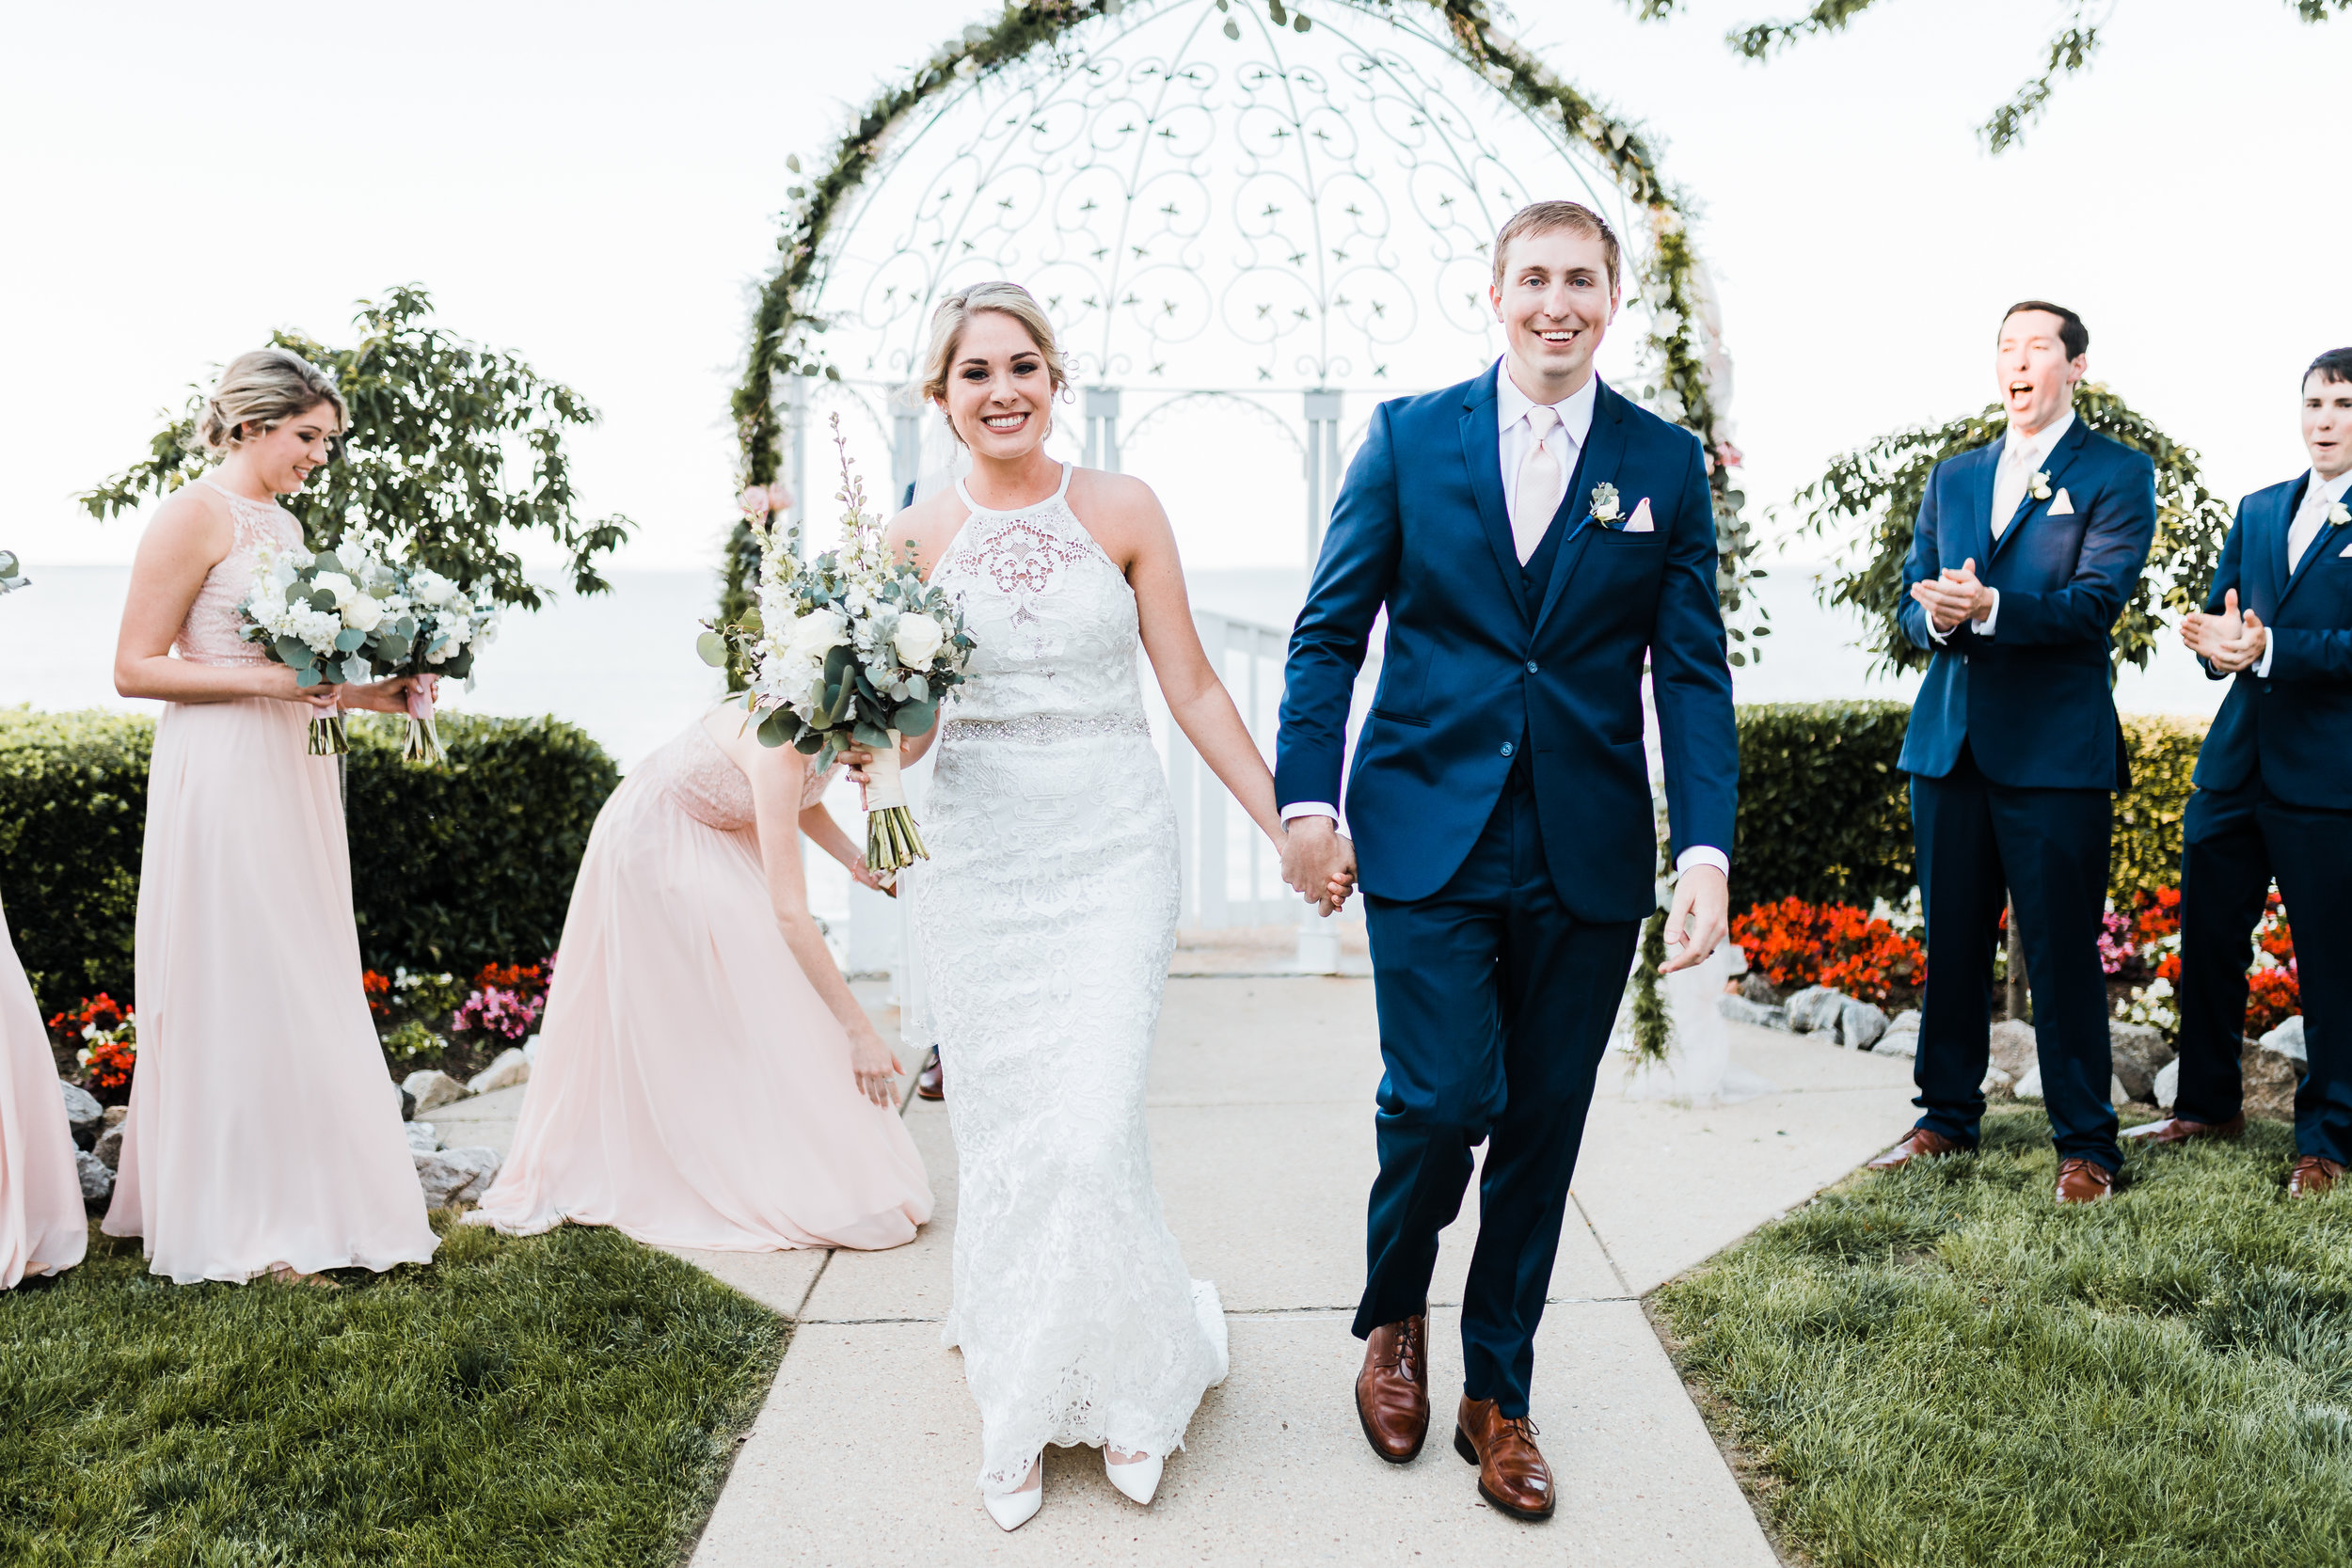 bride and groom excitedly make their way down the aisle after they said their i do's! - maryland wedding photographer